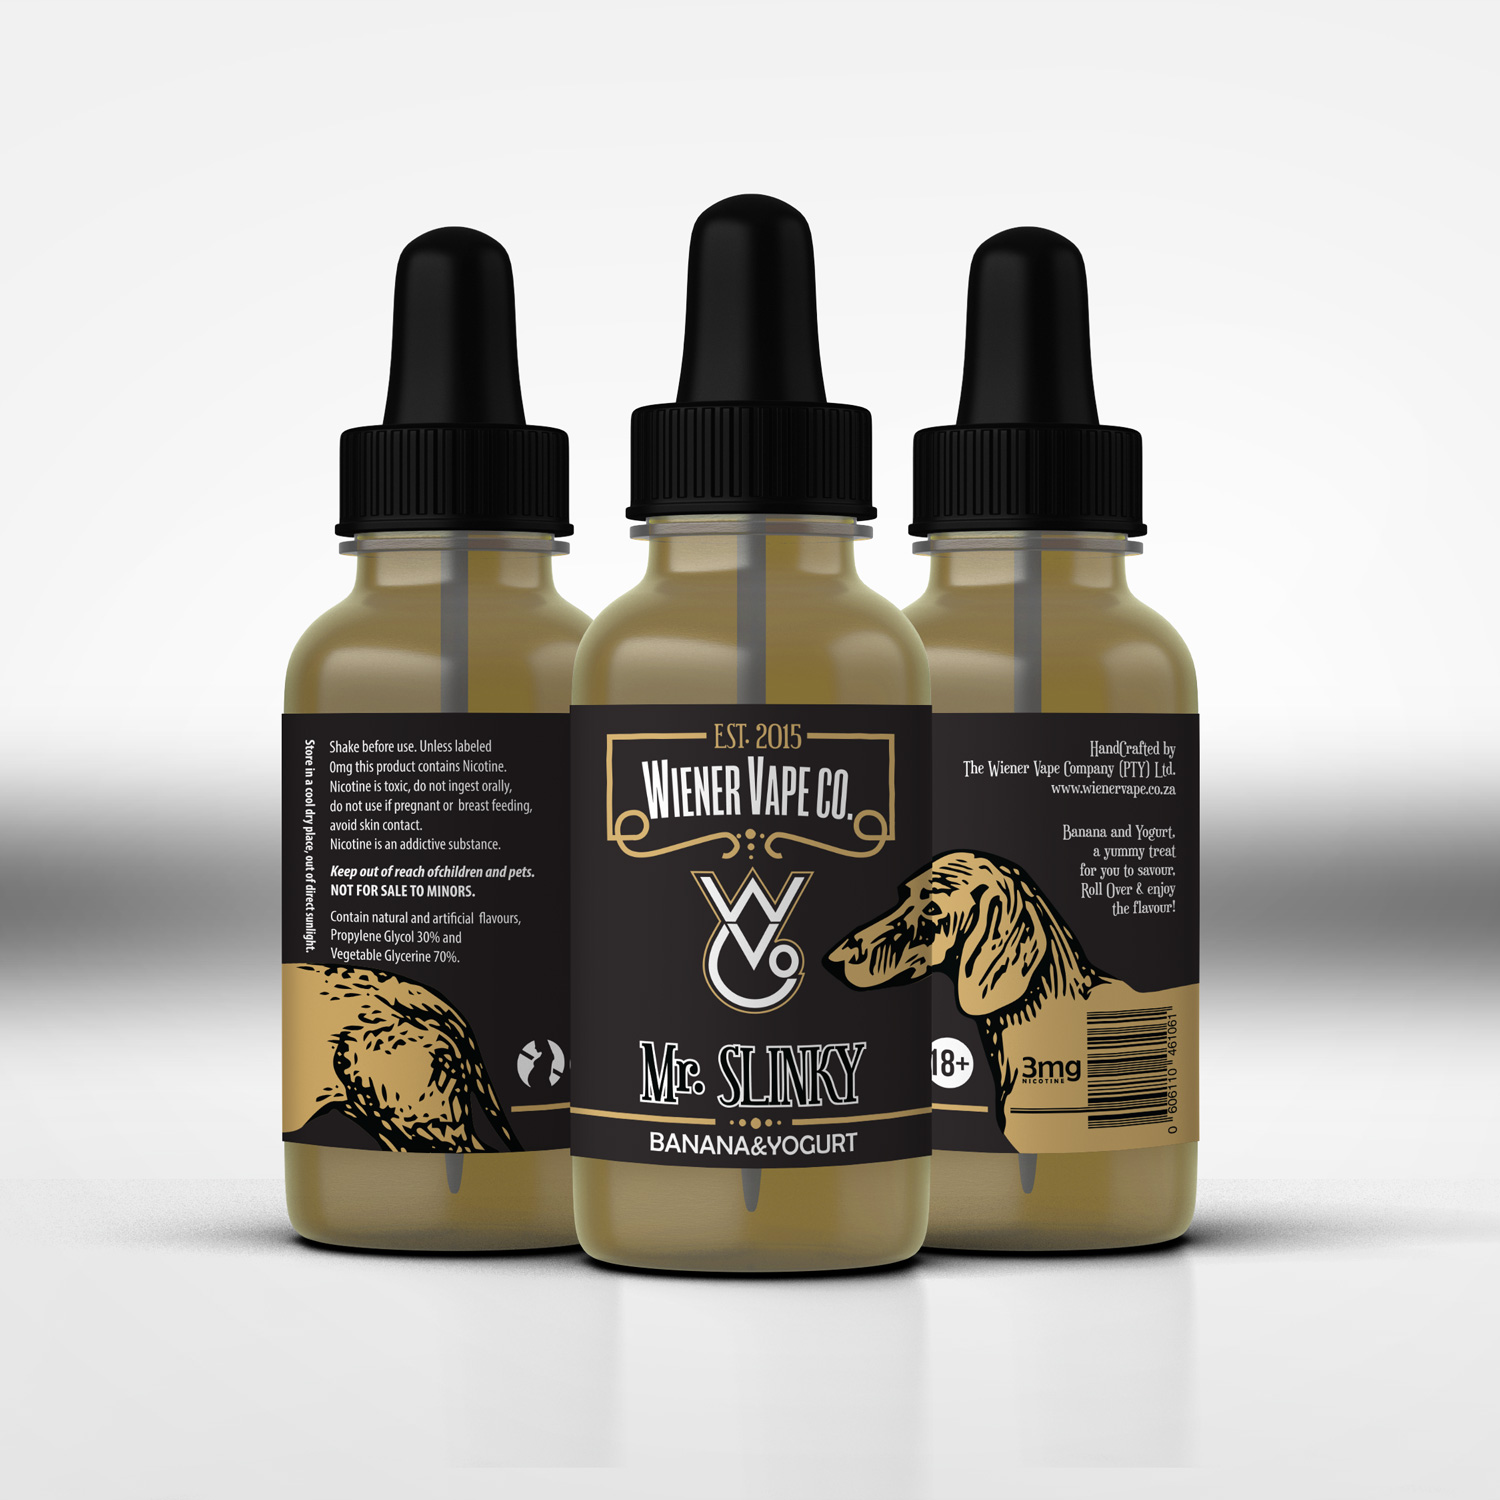 E liquid vape company needs label design for re brand